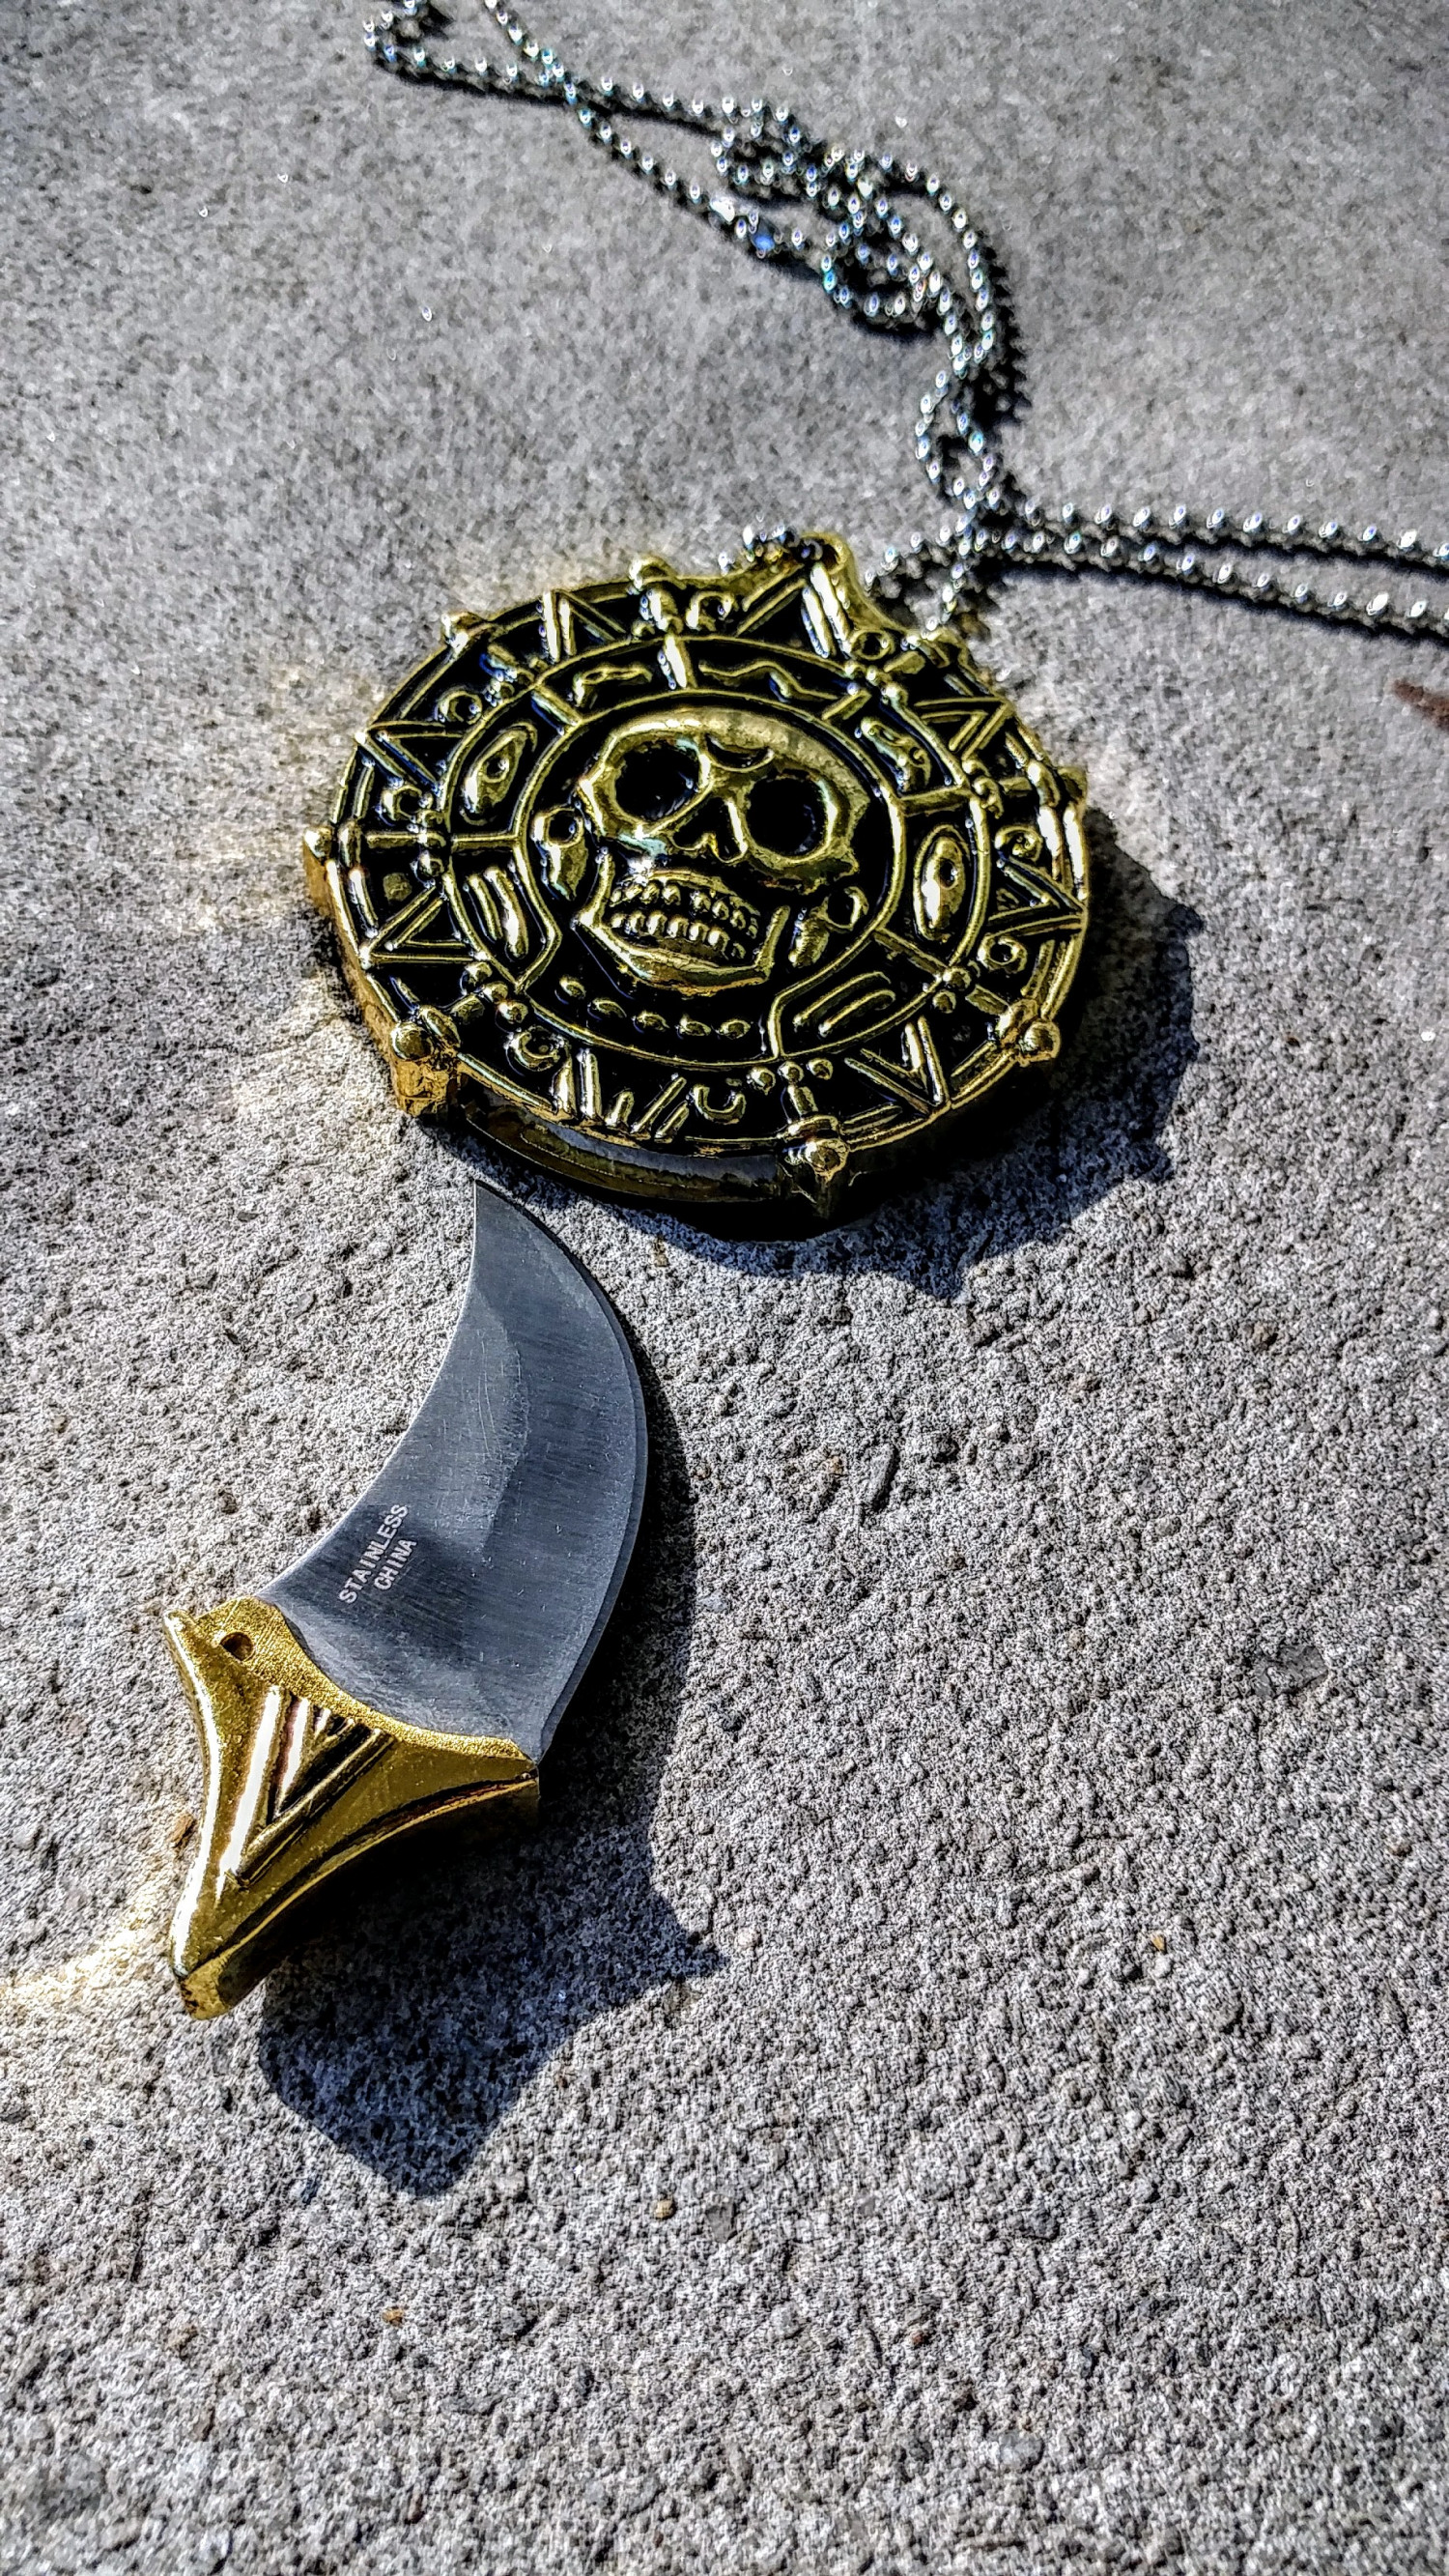 Pirate Pendant with Hidden Knife Infographic